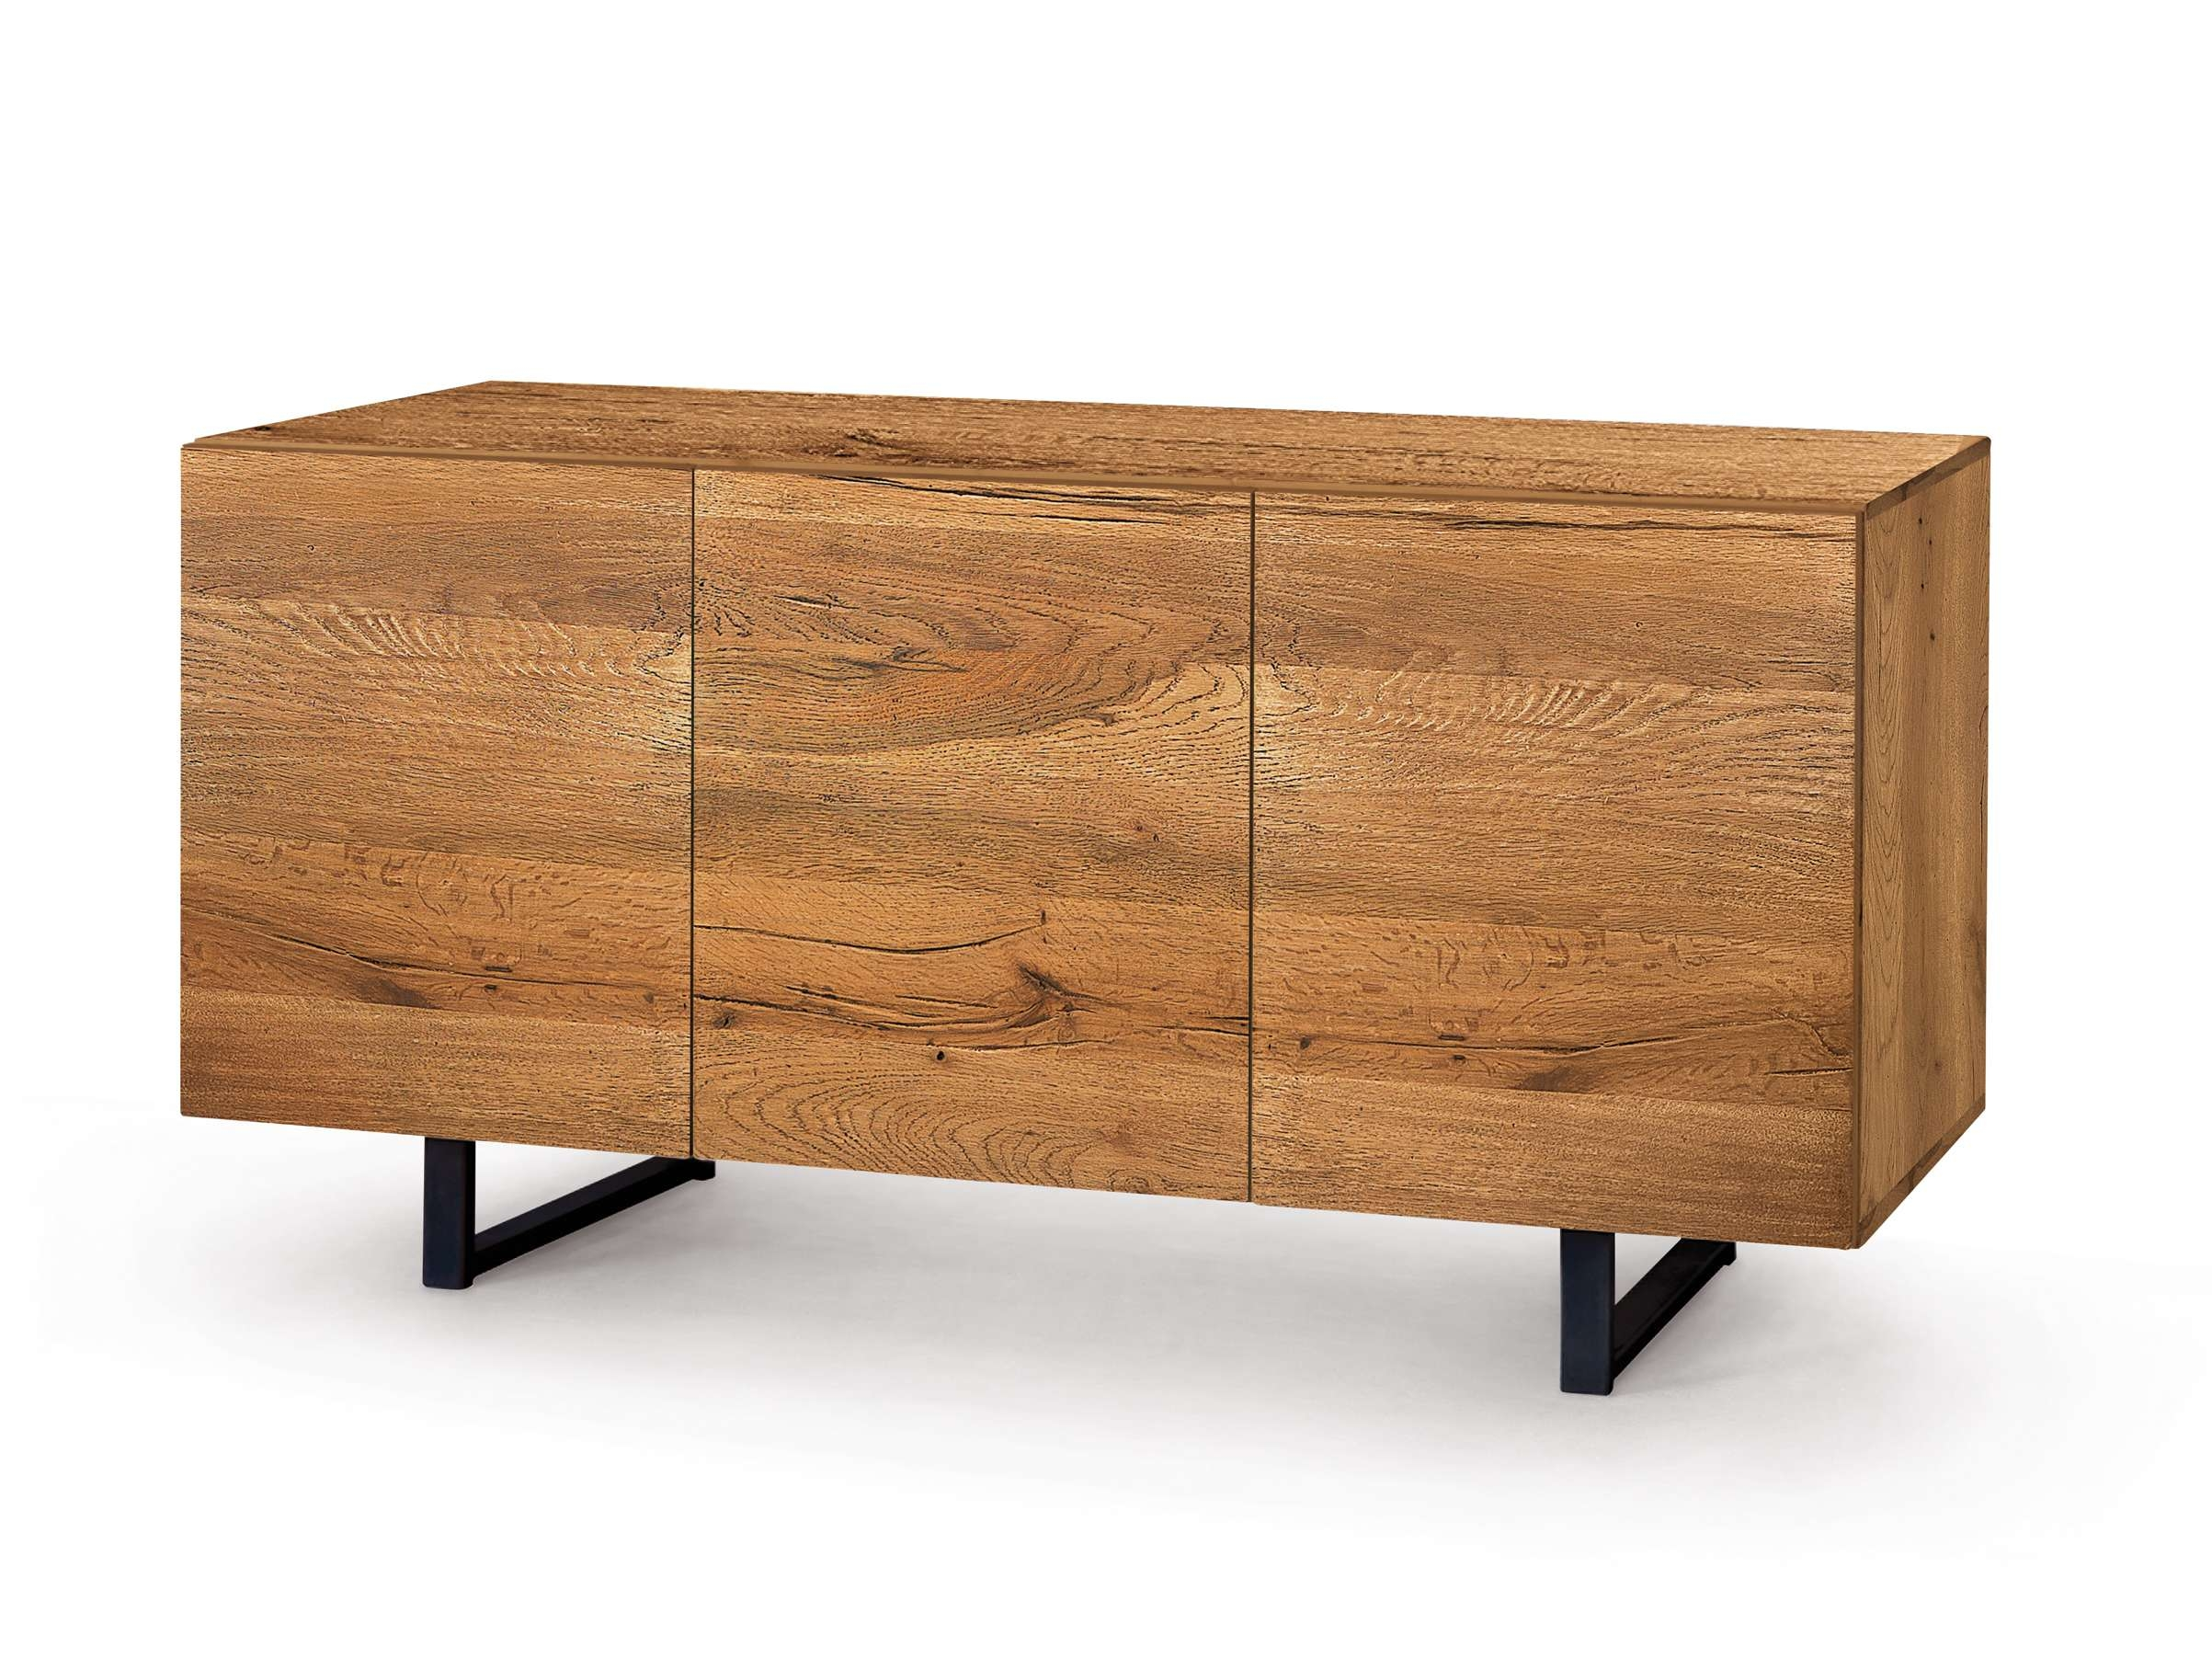 Oak Sideboard With Doors Enzaminiforms Design E Ggs Within Wooden Sideboards (View 9 of 20)